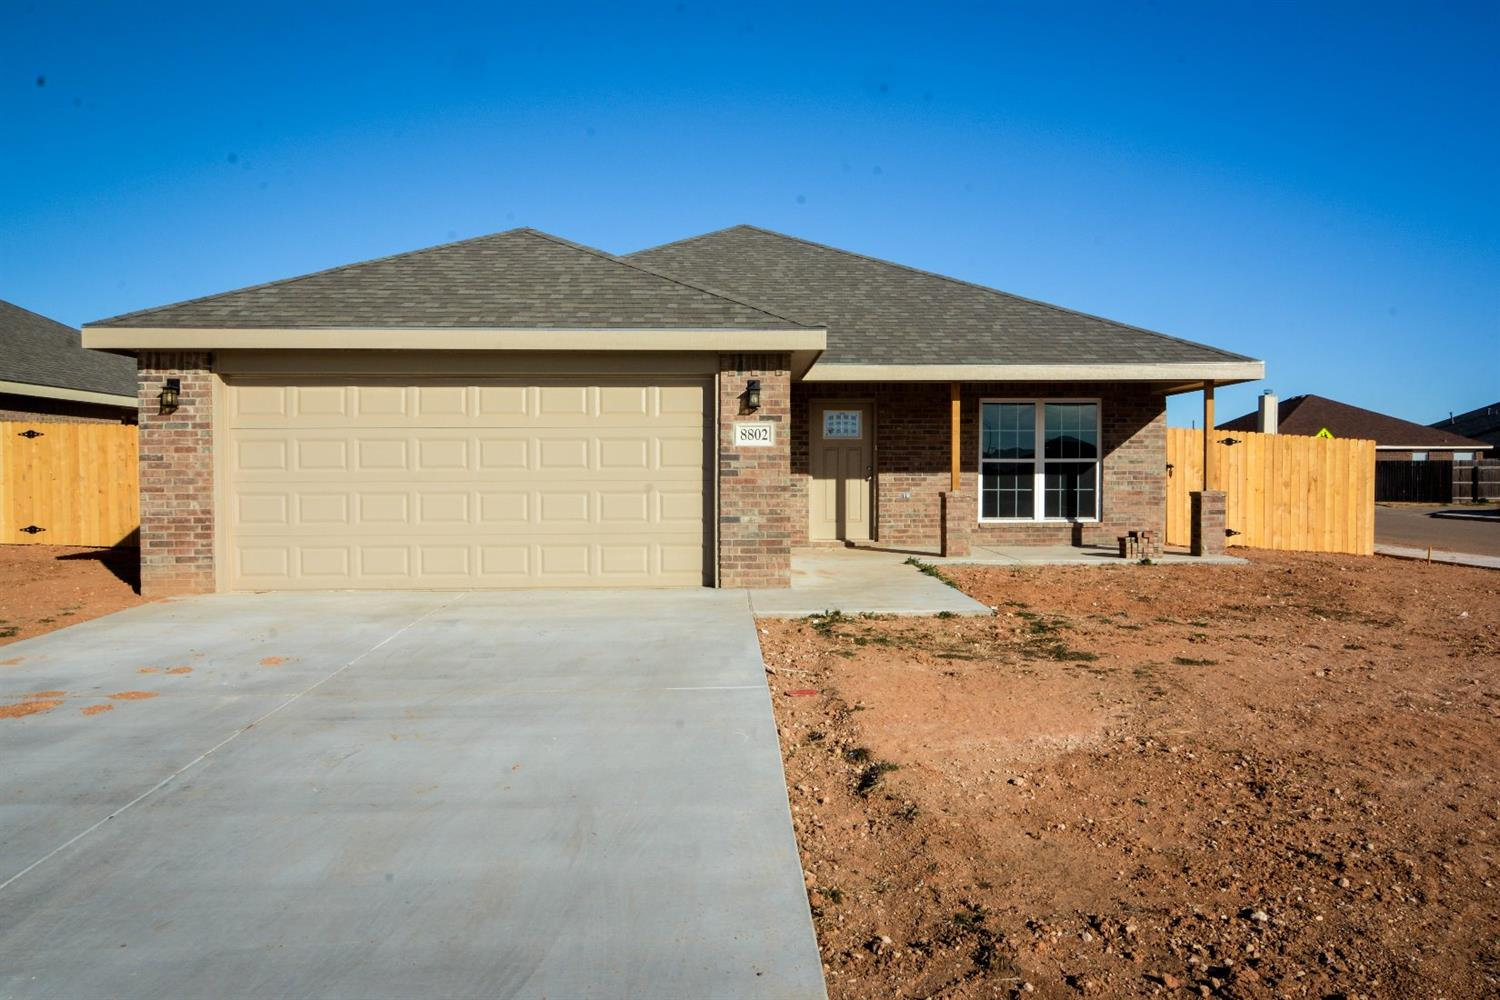 8818 16th Street, Lubbock in Lubbock County, TX 79416 Home for Sale